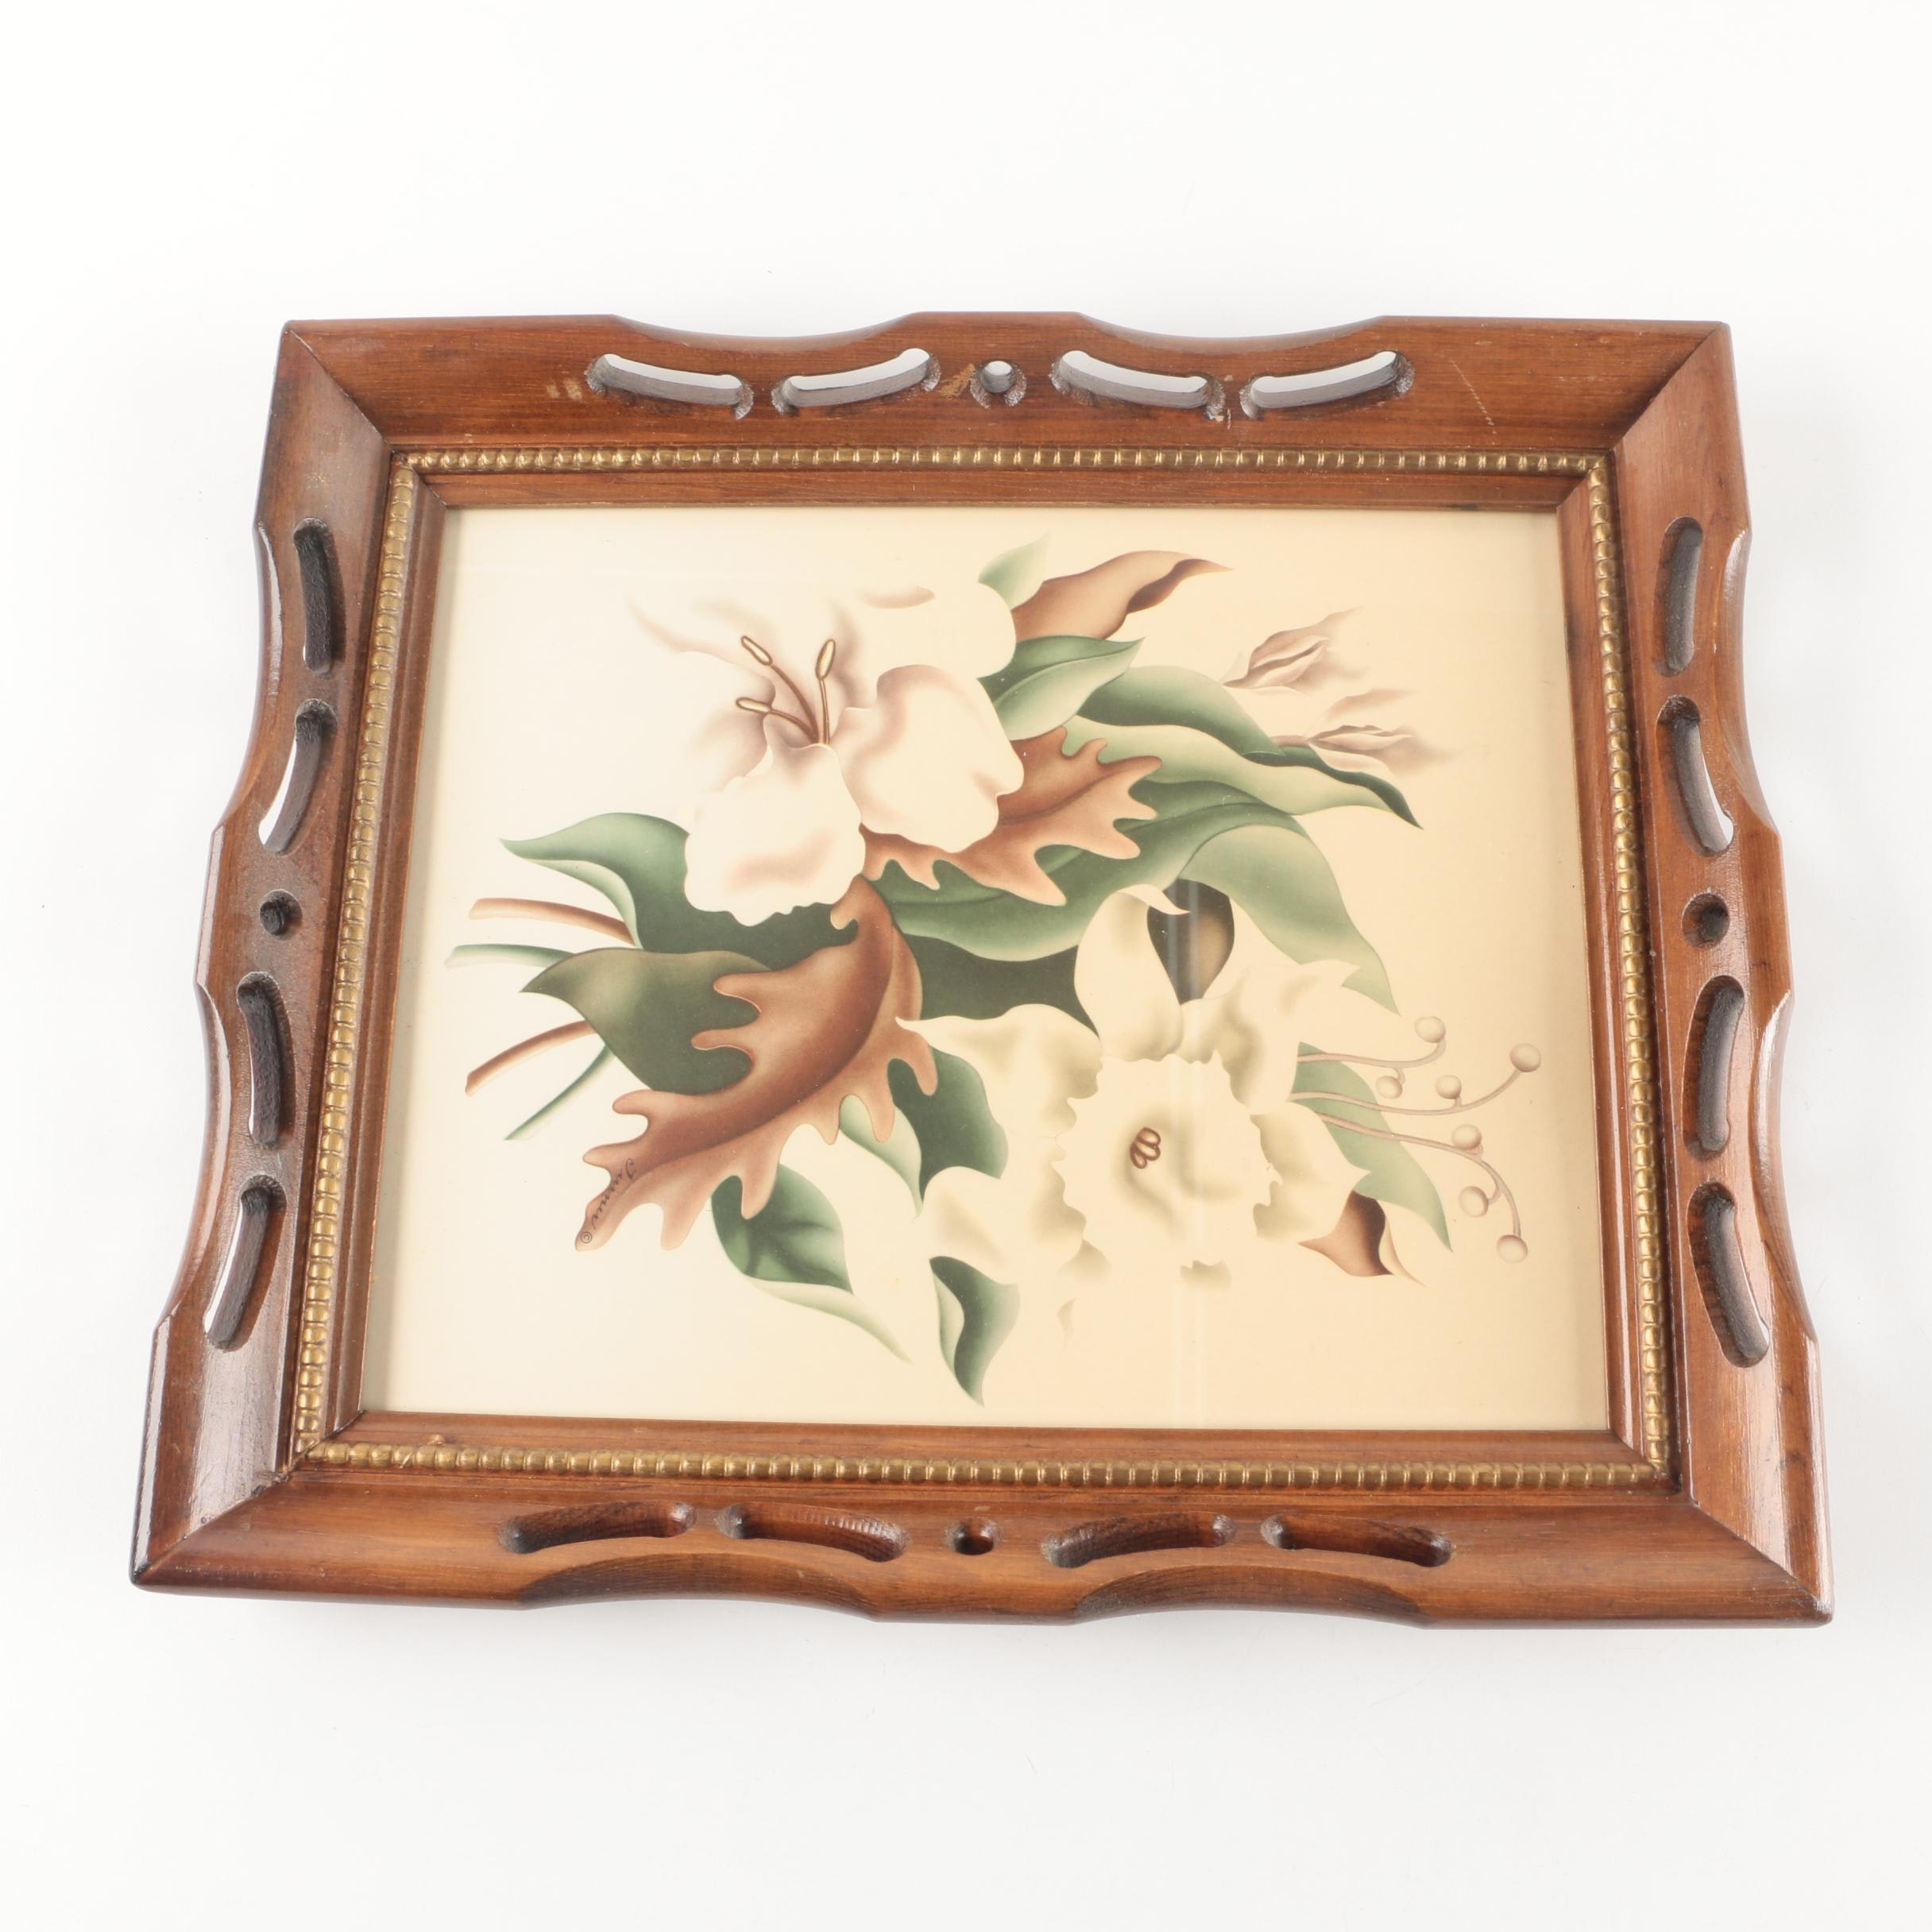 Vintage Turner Print of Flowers in Pierced Frame